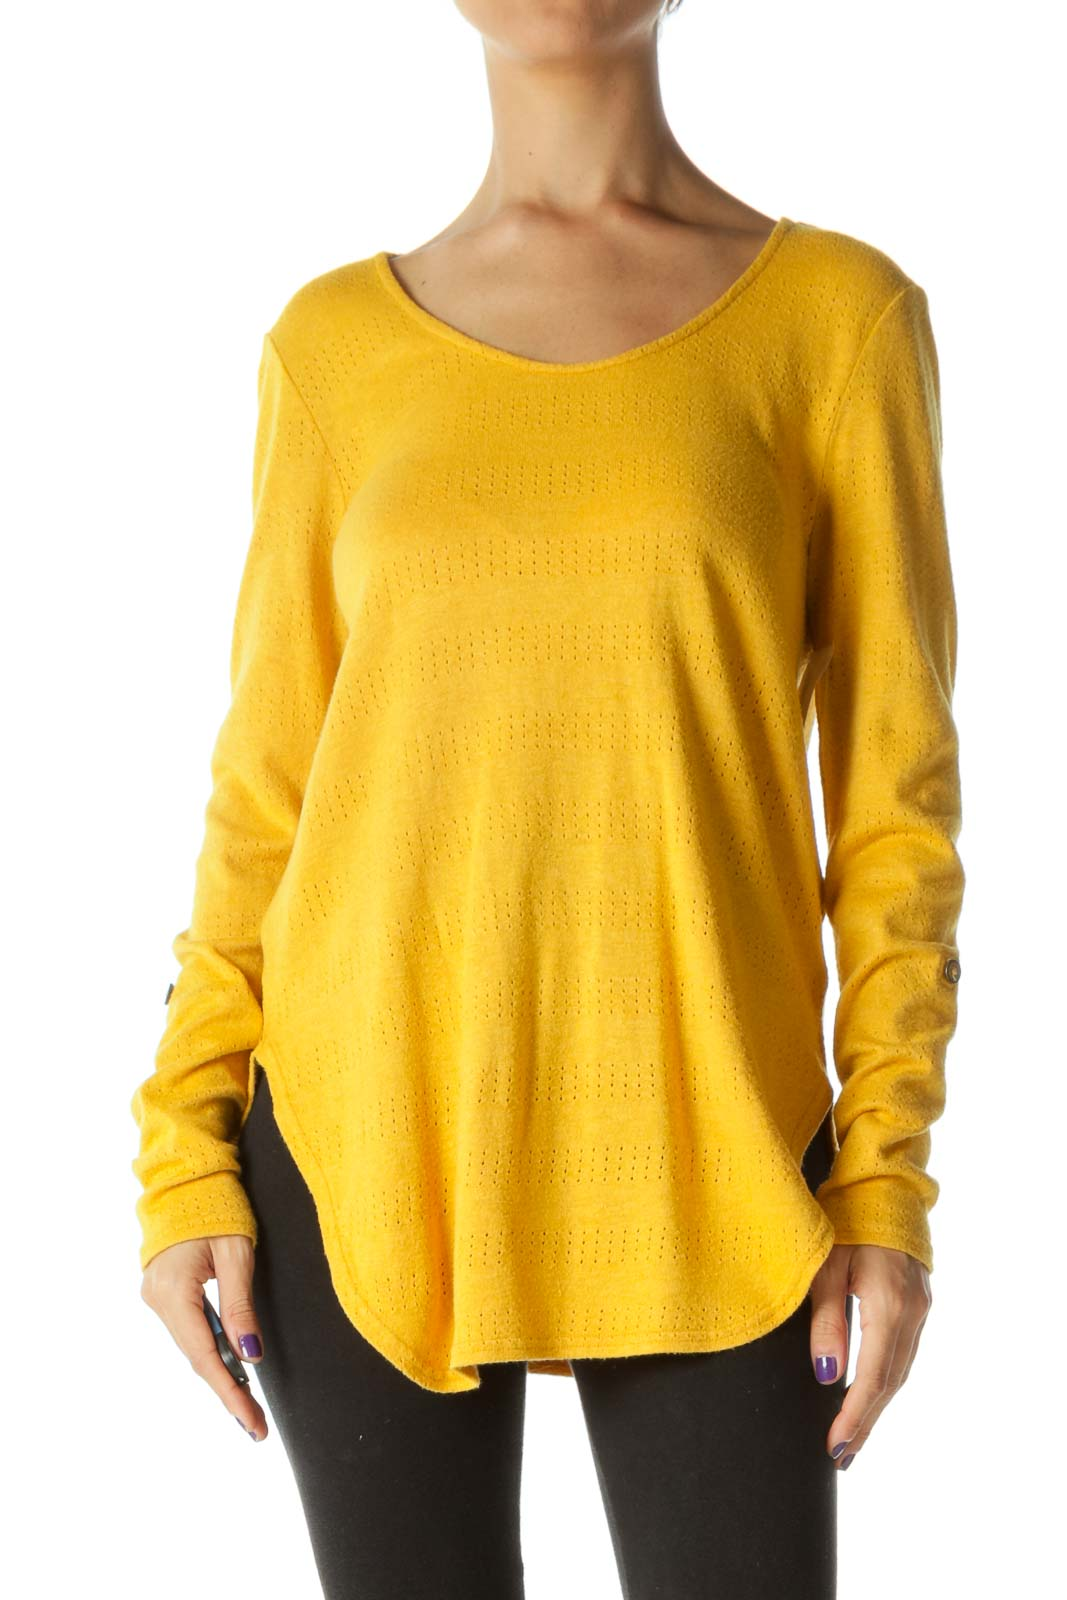 Mustard Yellow Roll-Up Sleeves Round Neck Stretch Knit Top Front